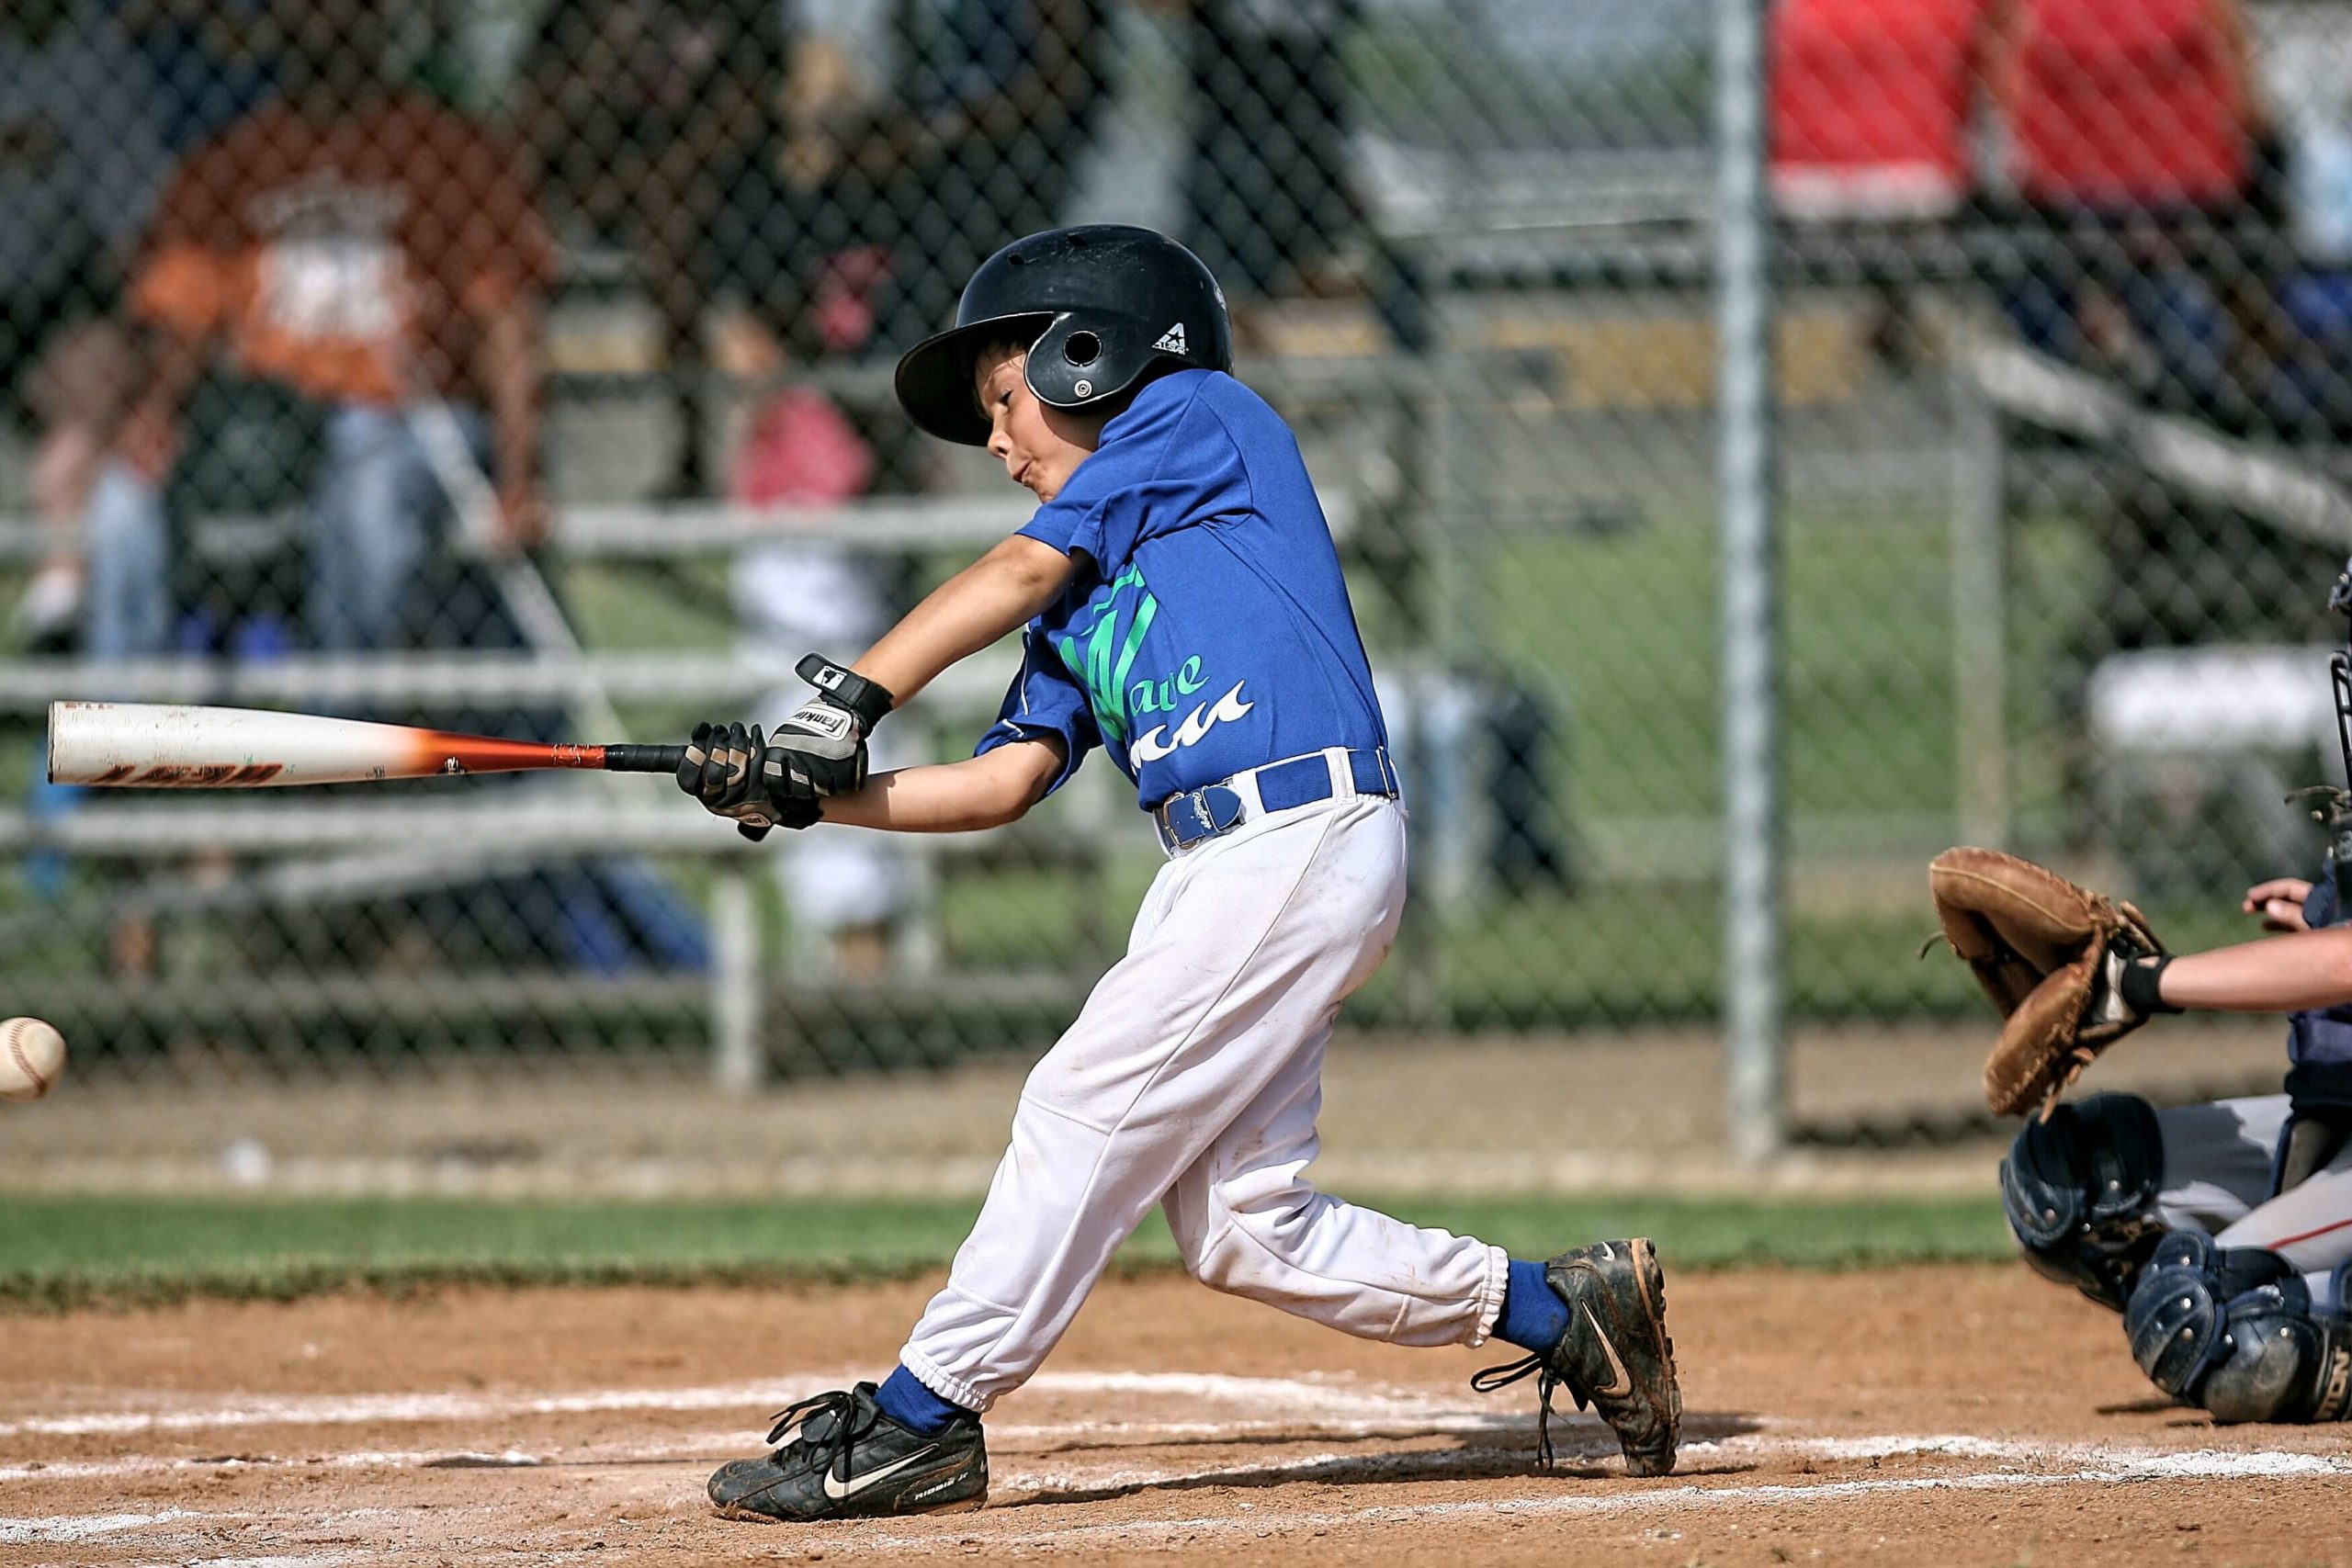 The Overlooked Basics of a Great Youth Baseball Drill